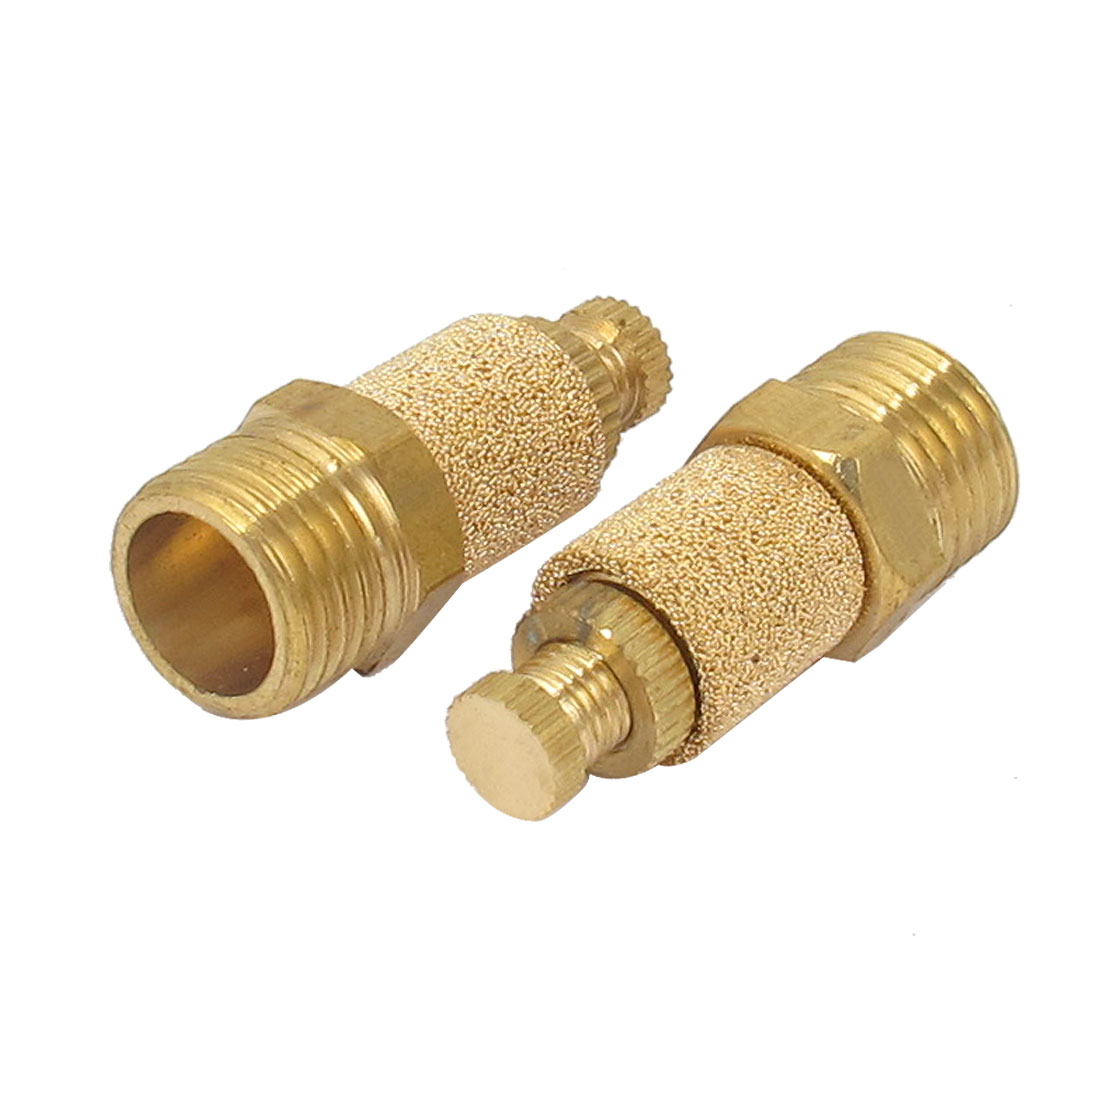 1/4BSP Thread Brass Adjustable Pneumatic Air Muffler Silencer Noise Exhaust 2pcs